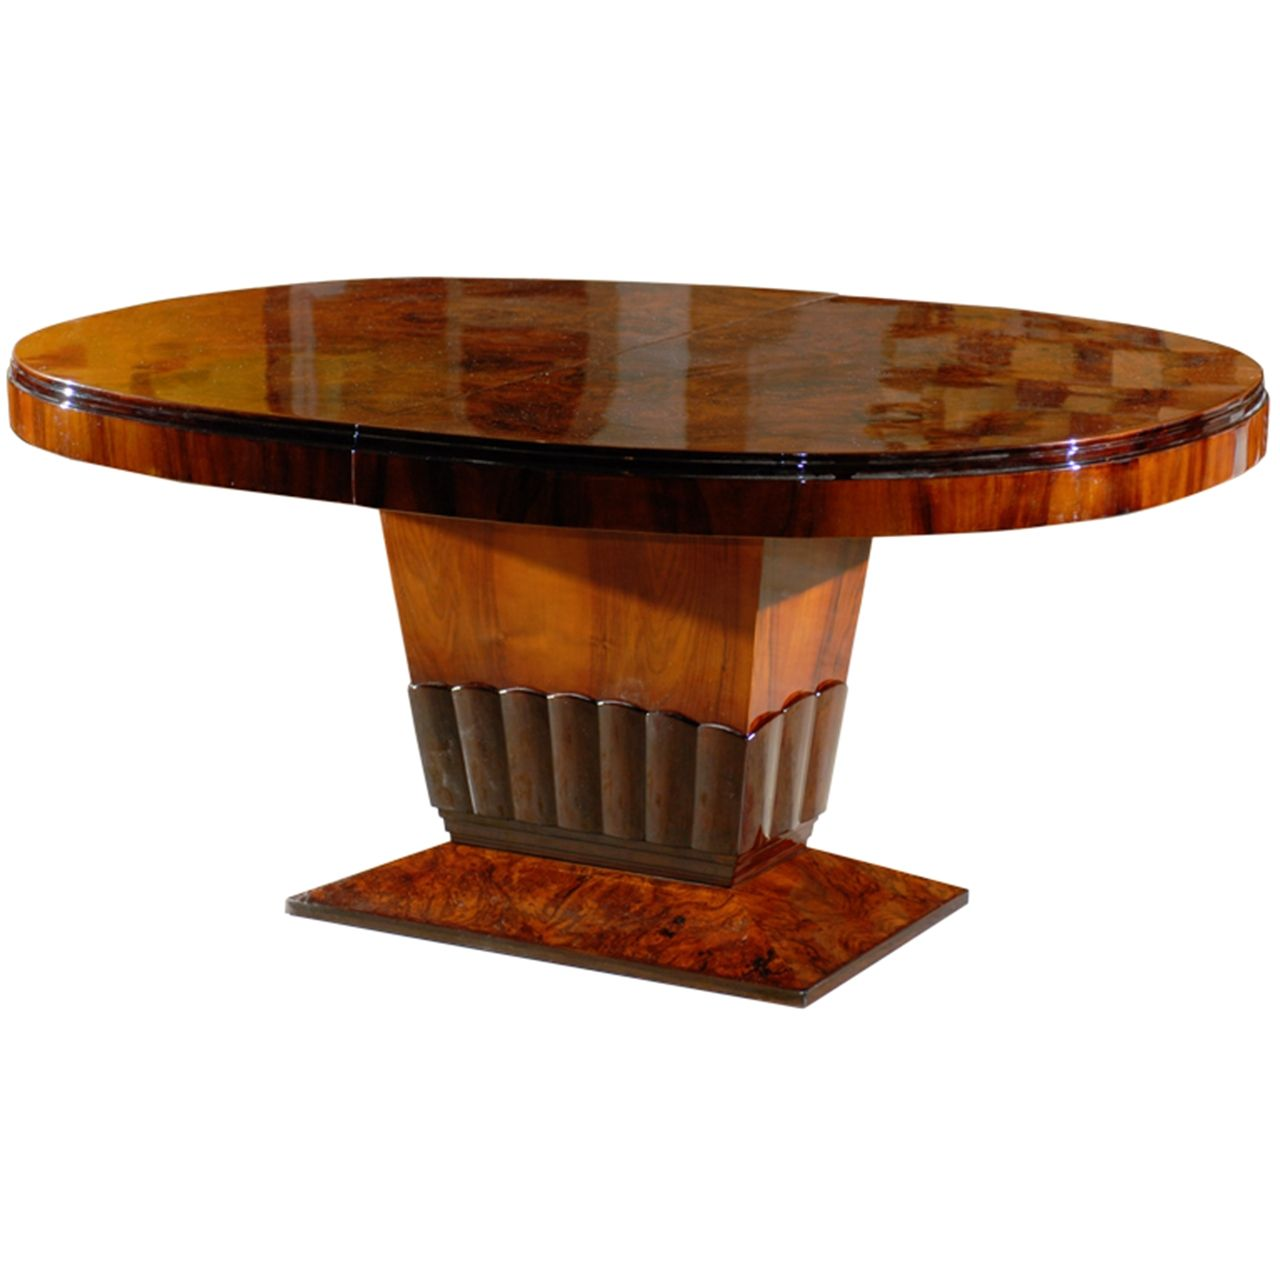 Art Deco Oval Dining Table with Tulip Base. | Art deco ...